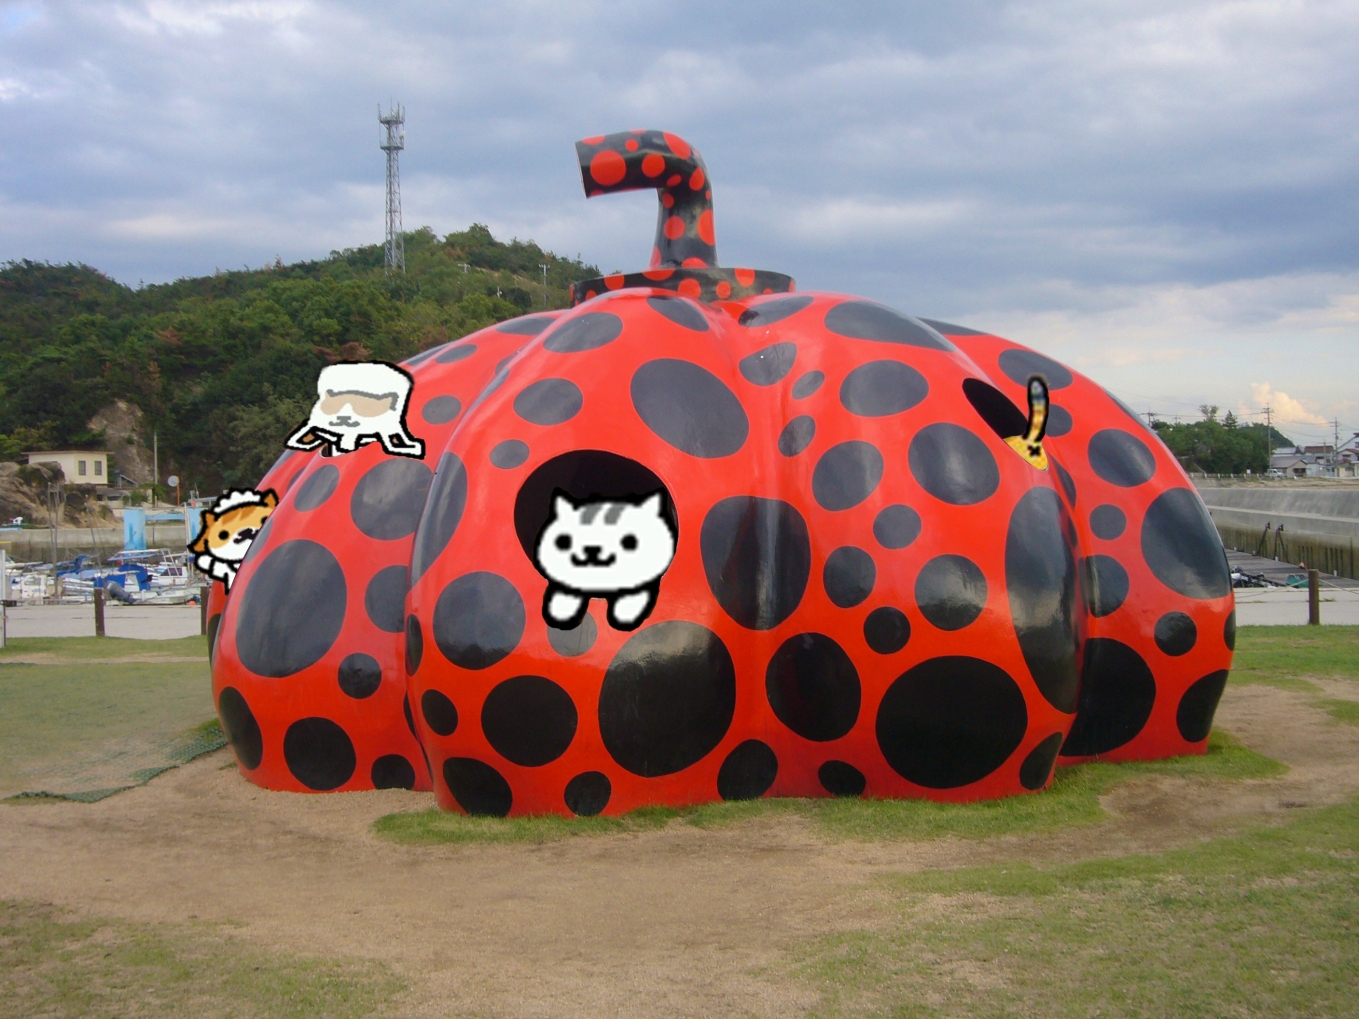 And finally, Yayoi Kusama really ought to make this sculpture available as a goodie JUST SAYIN